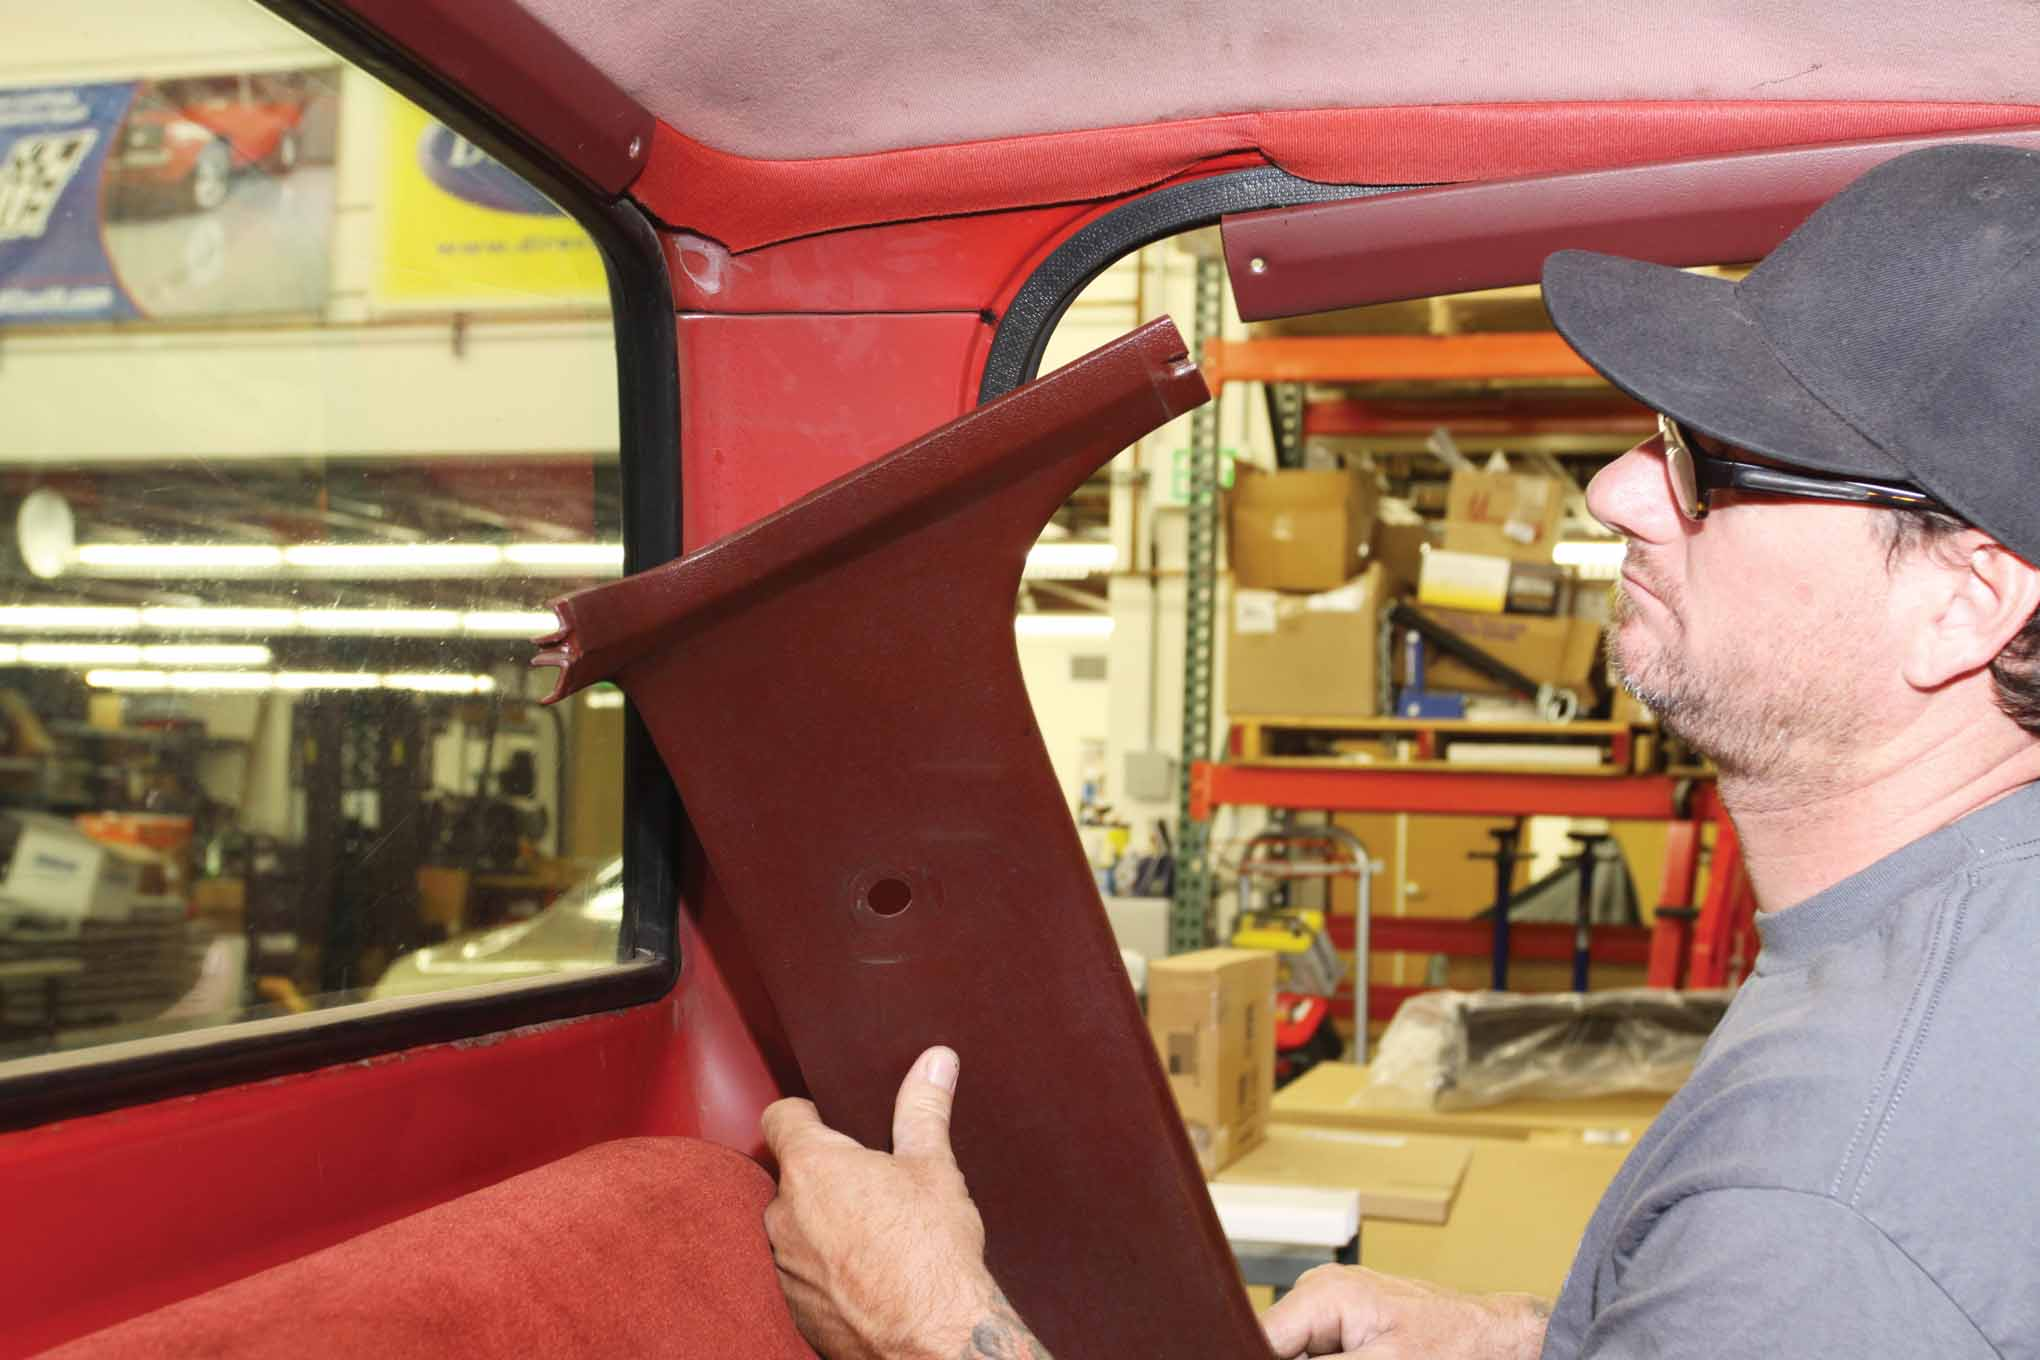 The first step to replacing the factory original headliner with a new ABS plastic headliner was to  remove the interior cab molding components.